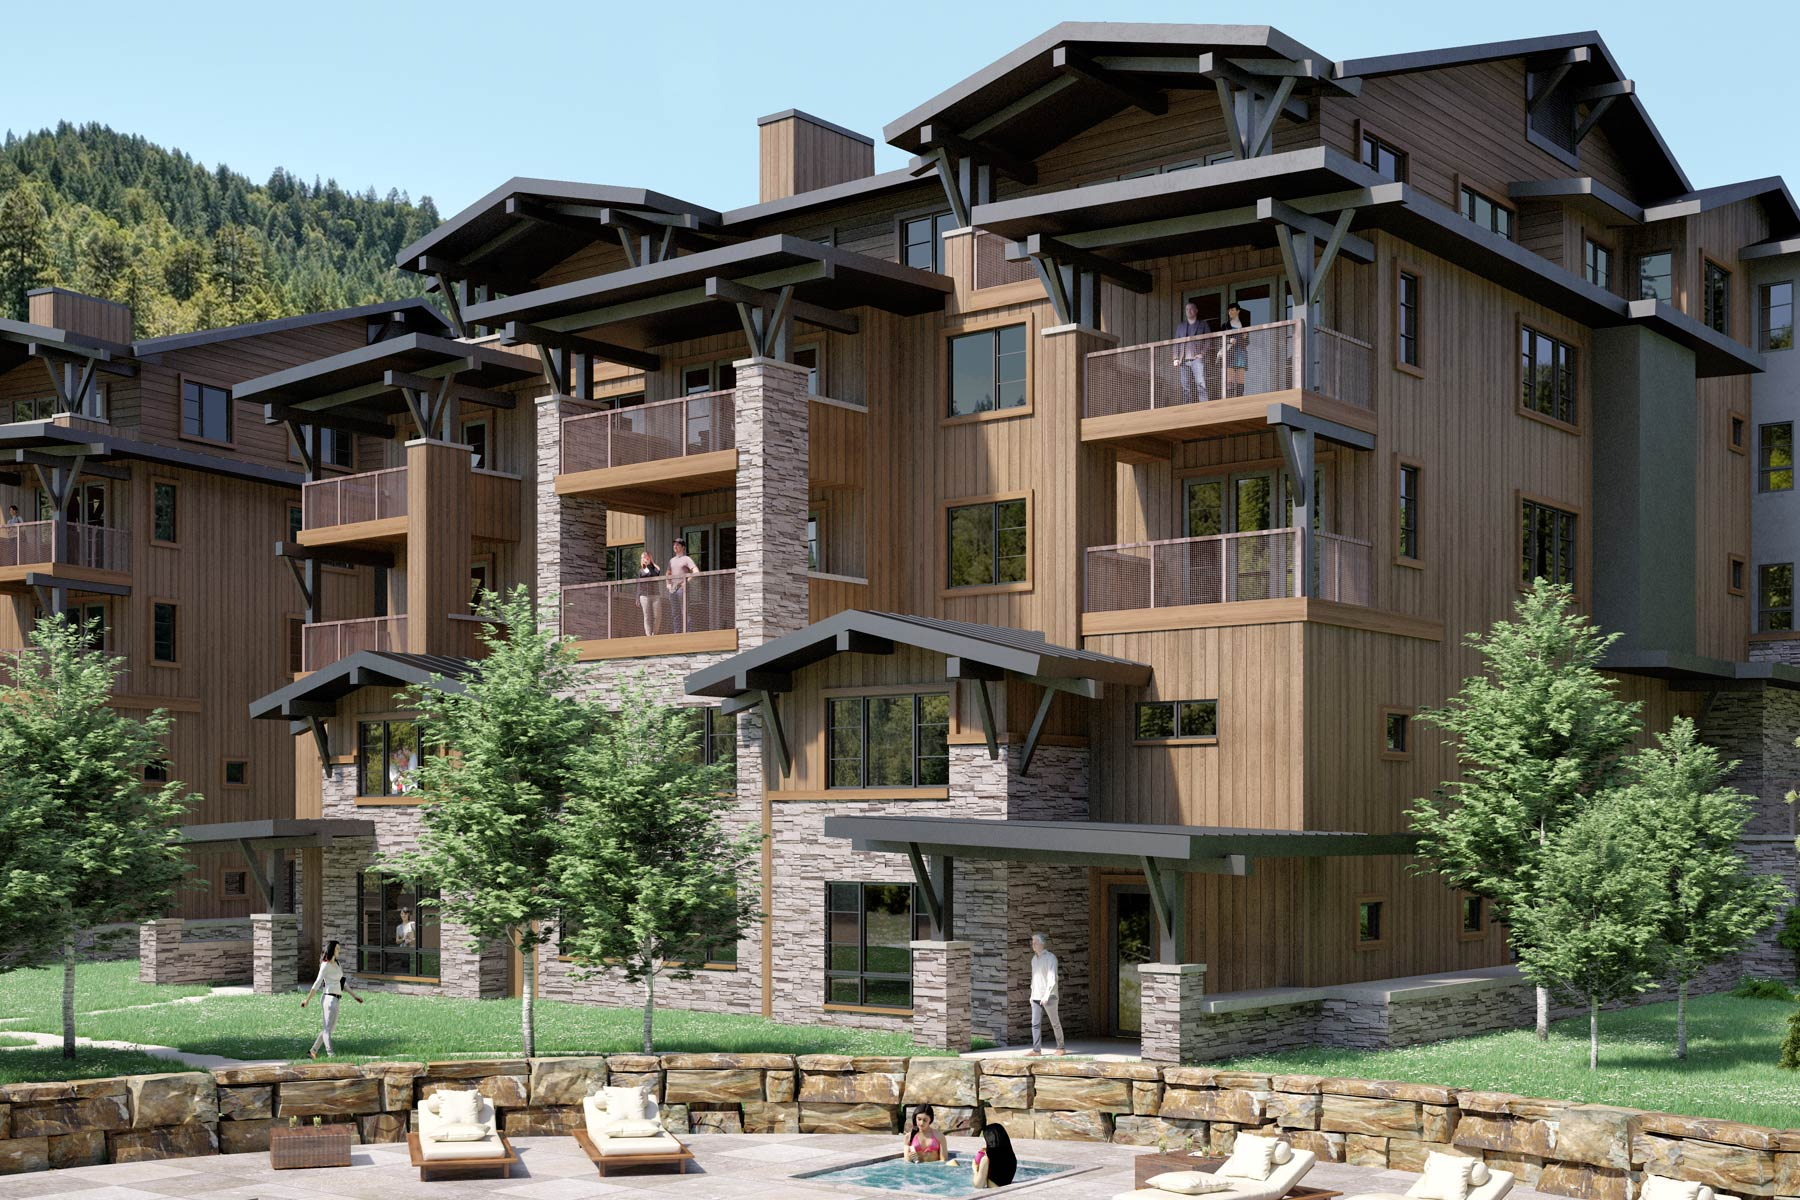 Condominium for Sale at New Construction Mountain Lake Condo 2 Summit View Road Unit 101 Big Sky, Montana 59716 United States